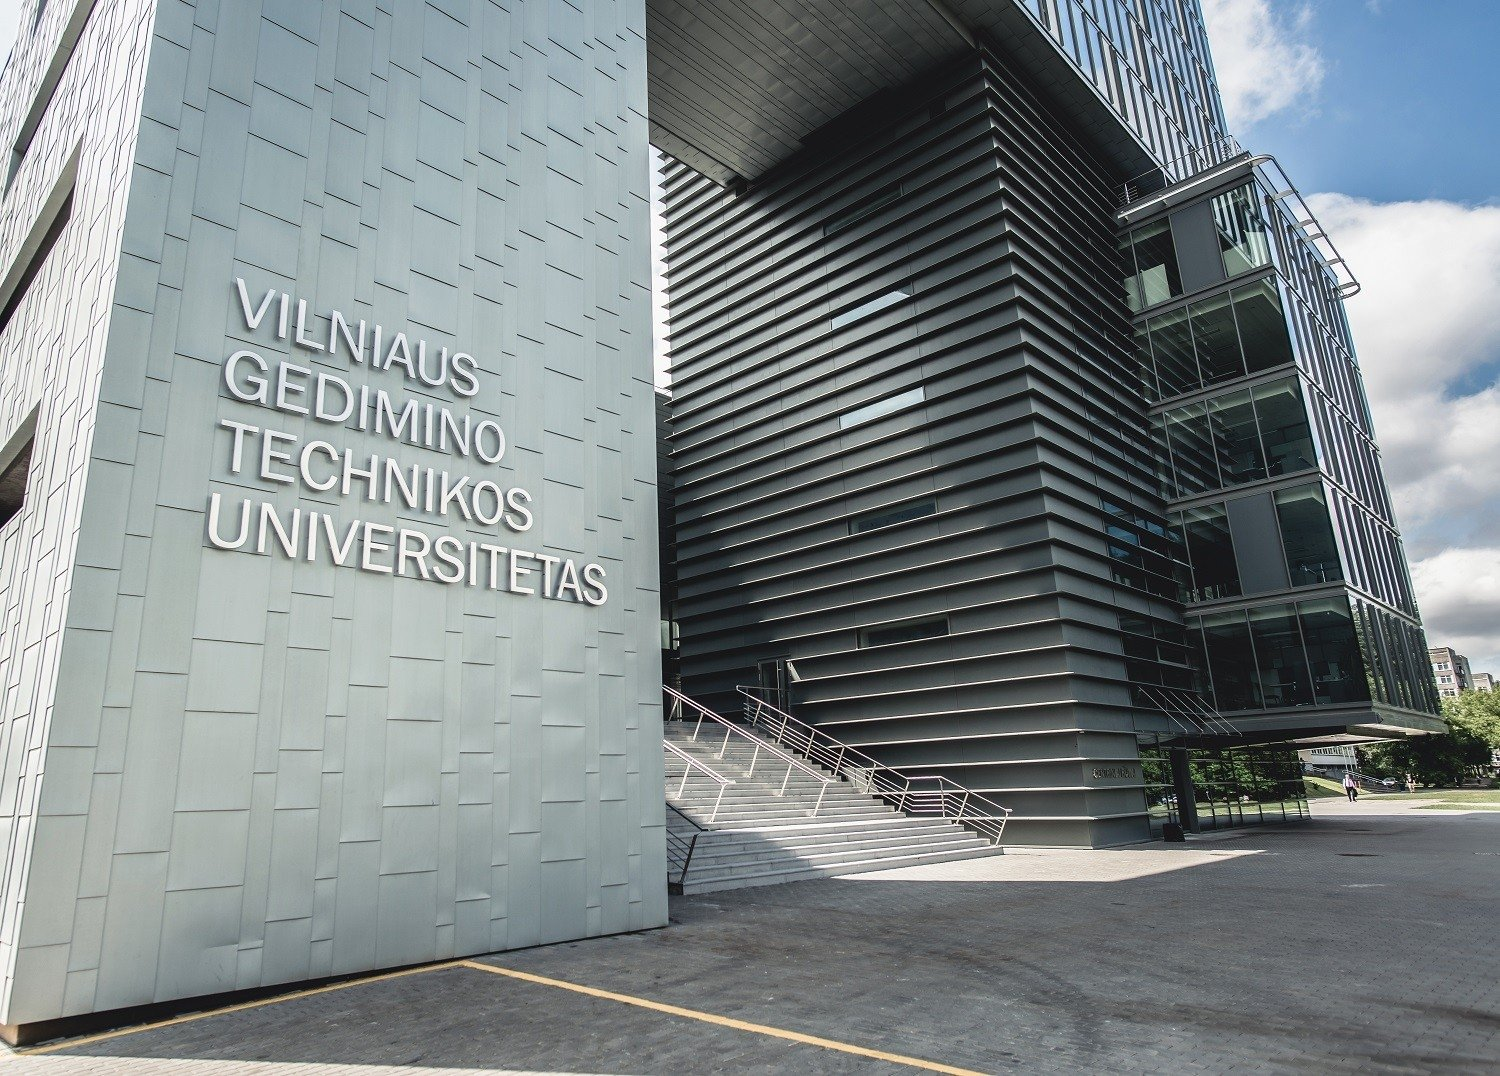 VGTU is among the top 100 universities in the world: the